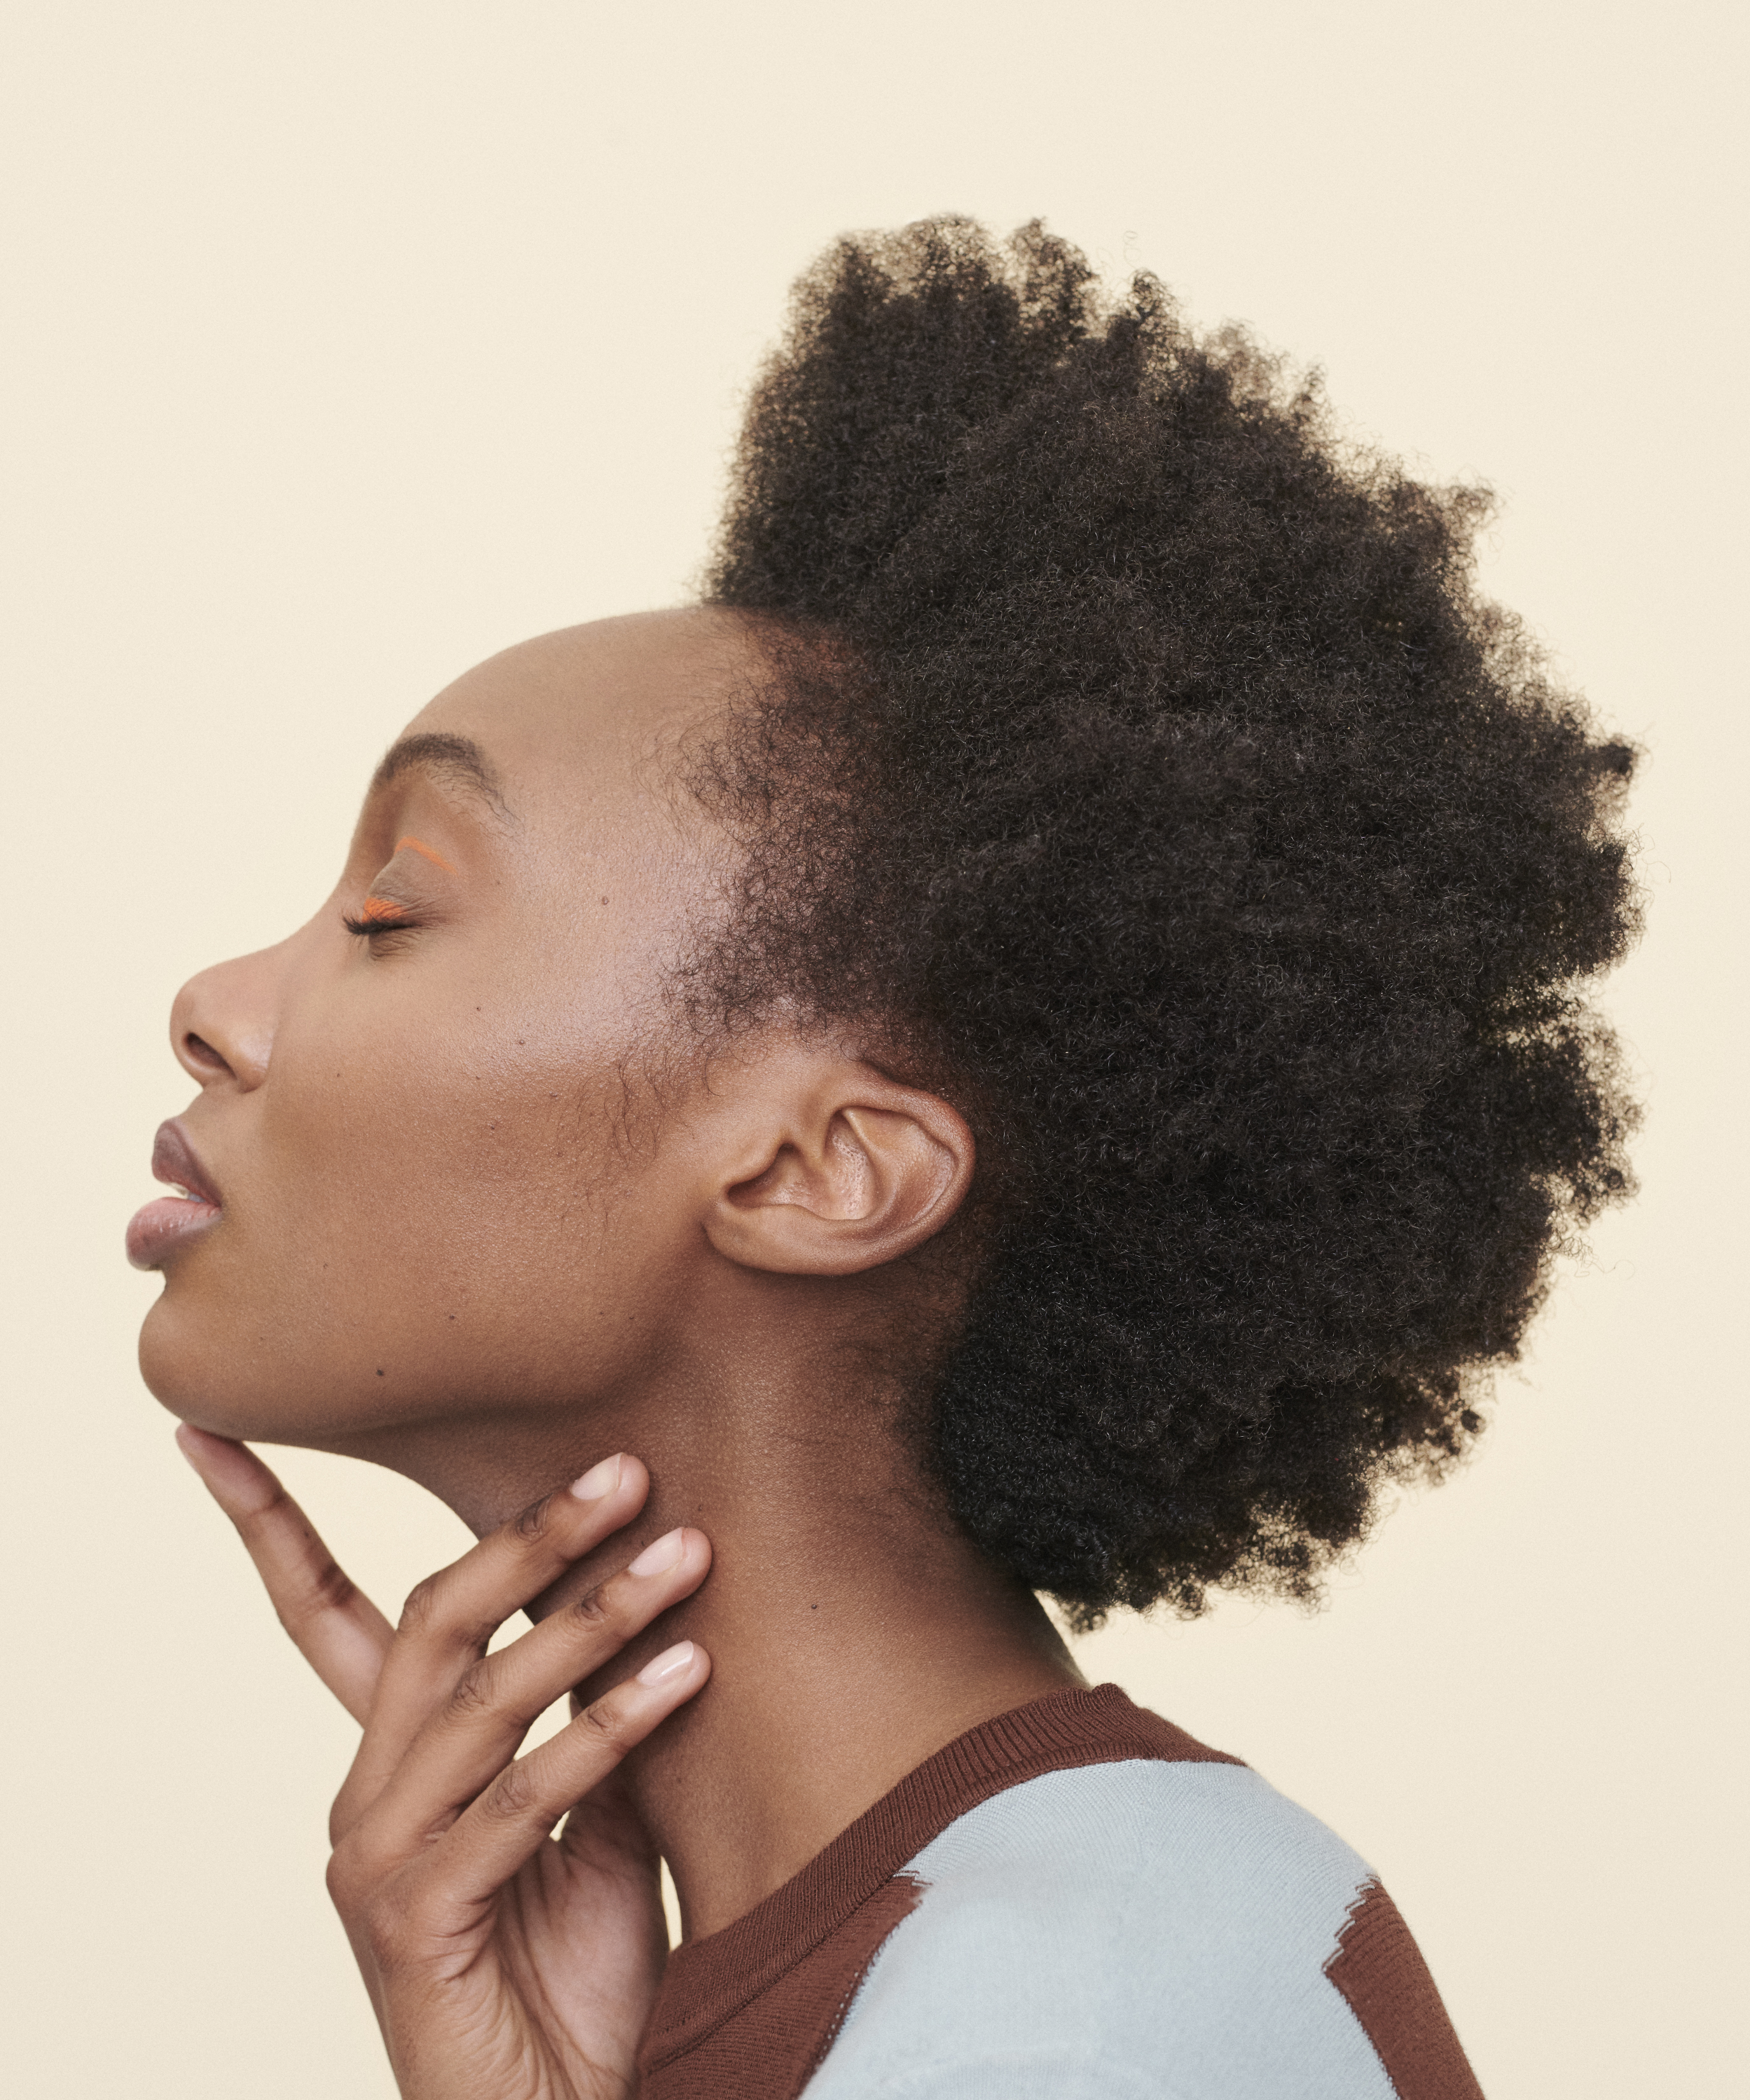 woman with short, curly hair with natural hair styles